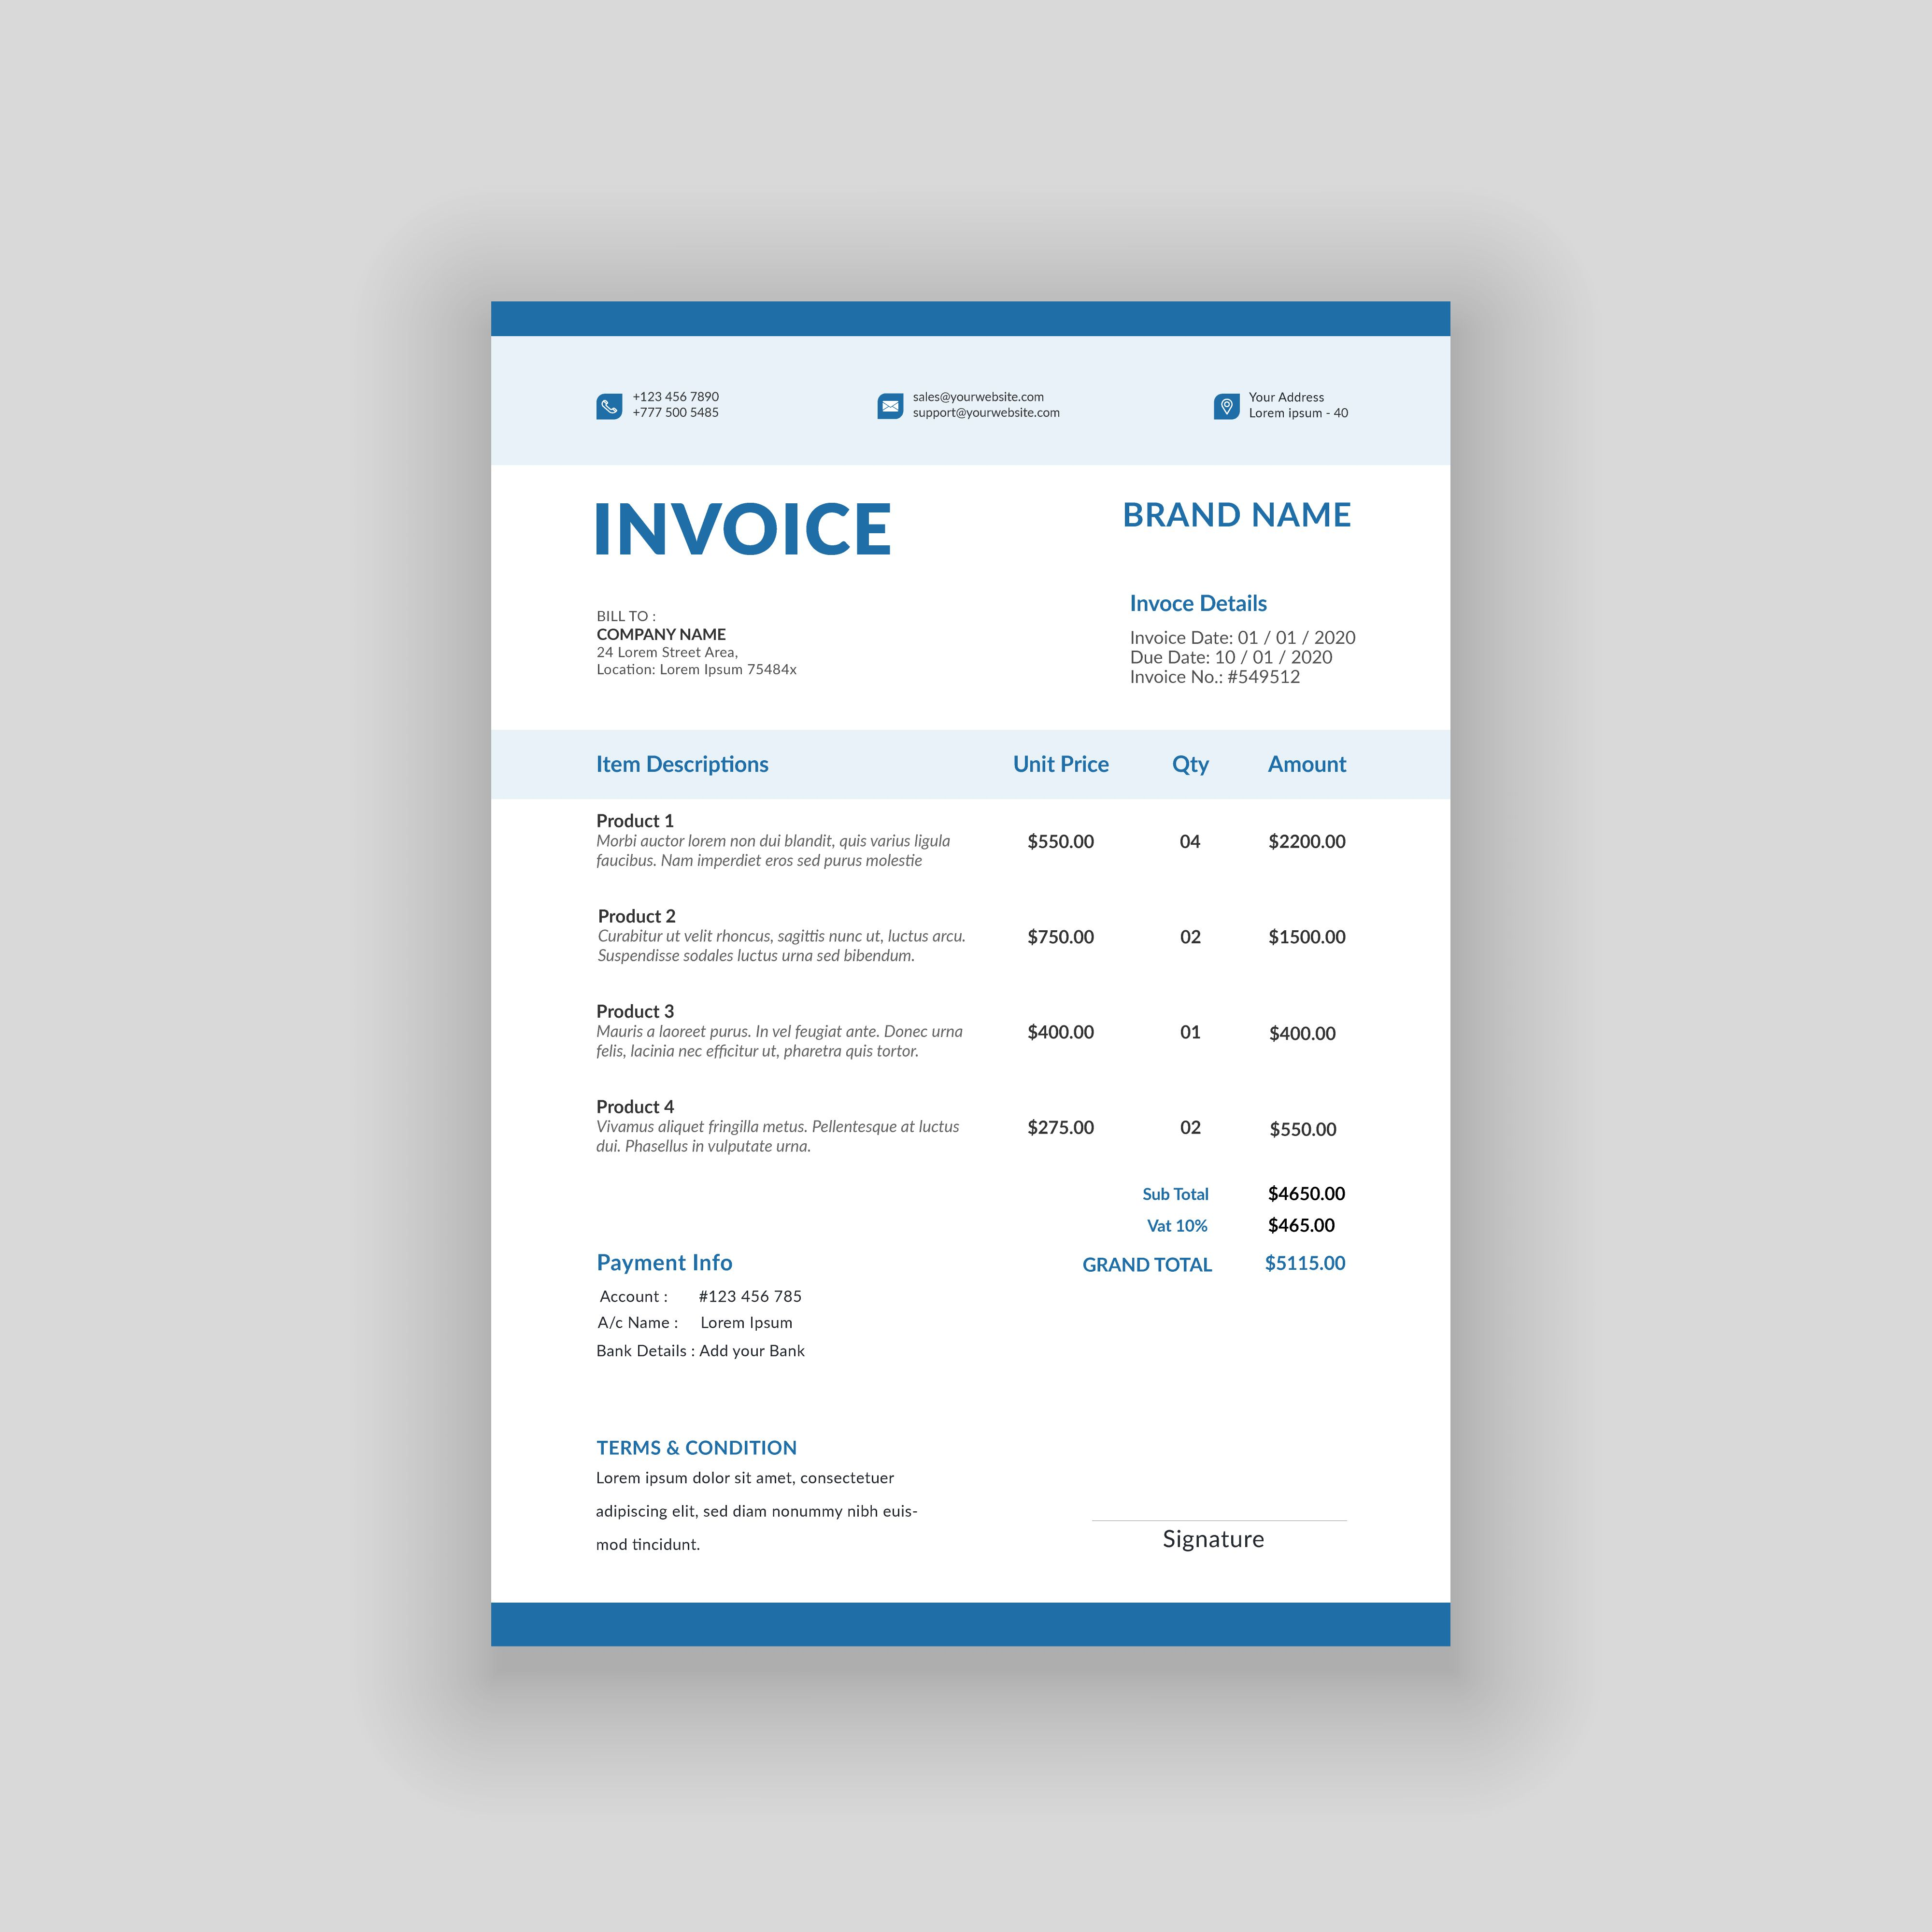 Professional Business Invoice Template Vector Format Voucher Bill Receipt Quotation Sale In 2021 Invoice Template Website Banner Templates